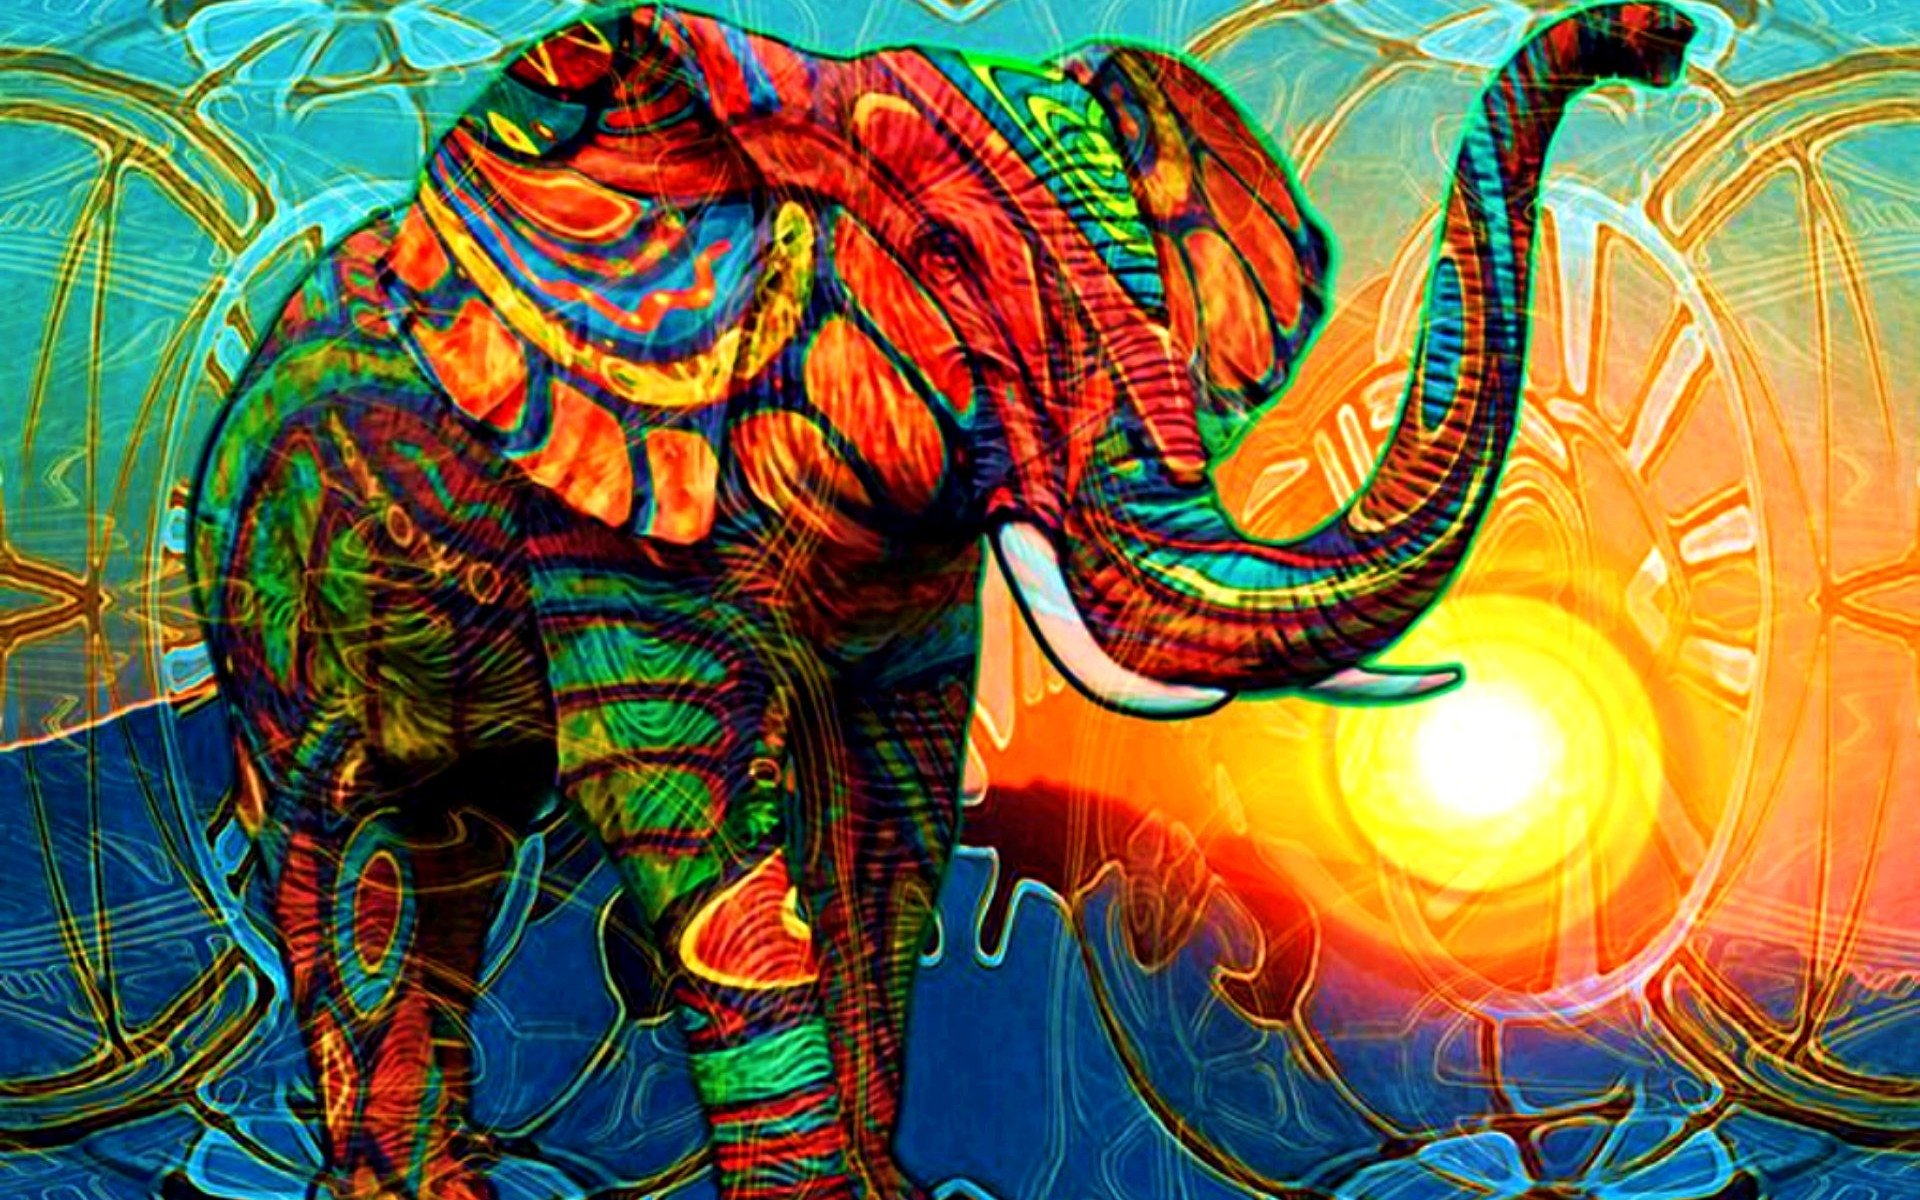 11 elephant hd wallpapers | background images - wallpaper abyss